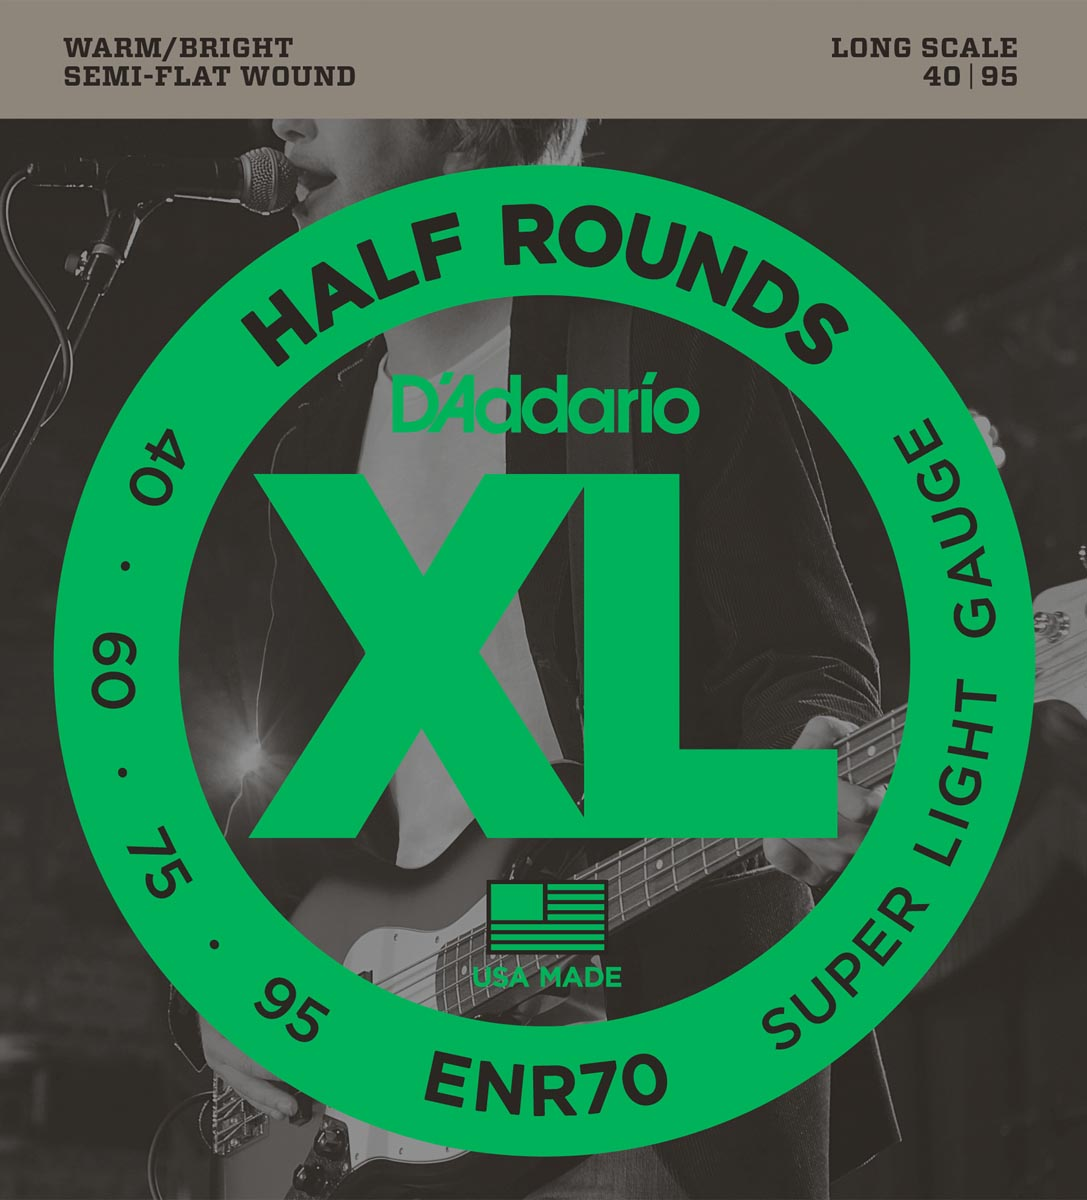 DADDARIO ENR70 XL HALF ROUNDS SUPER LIGHT [40-95]